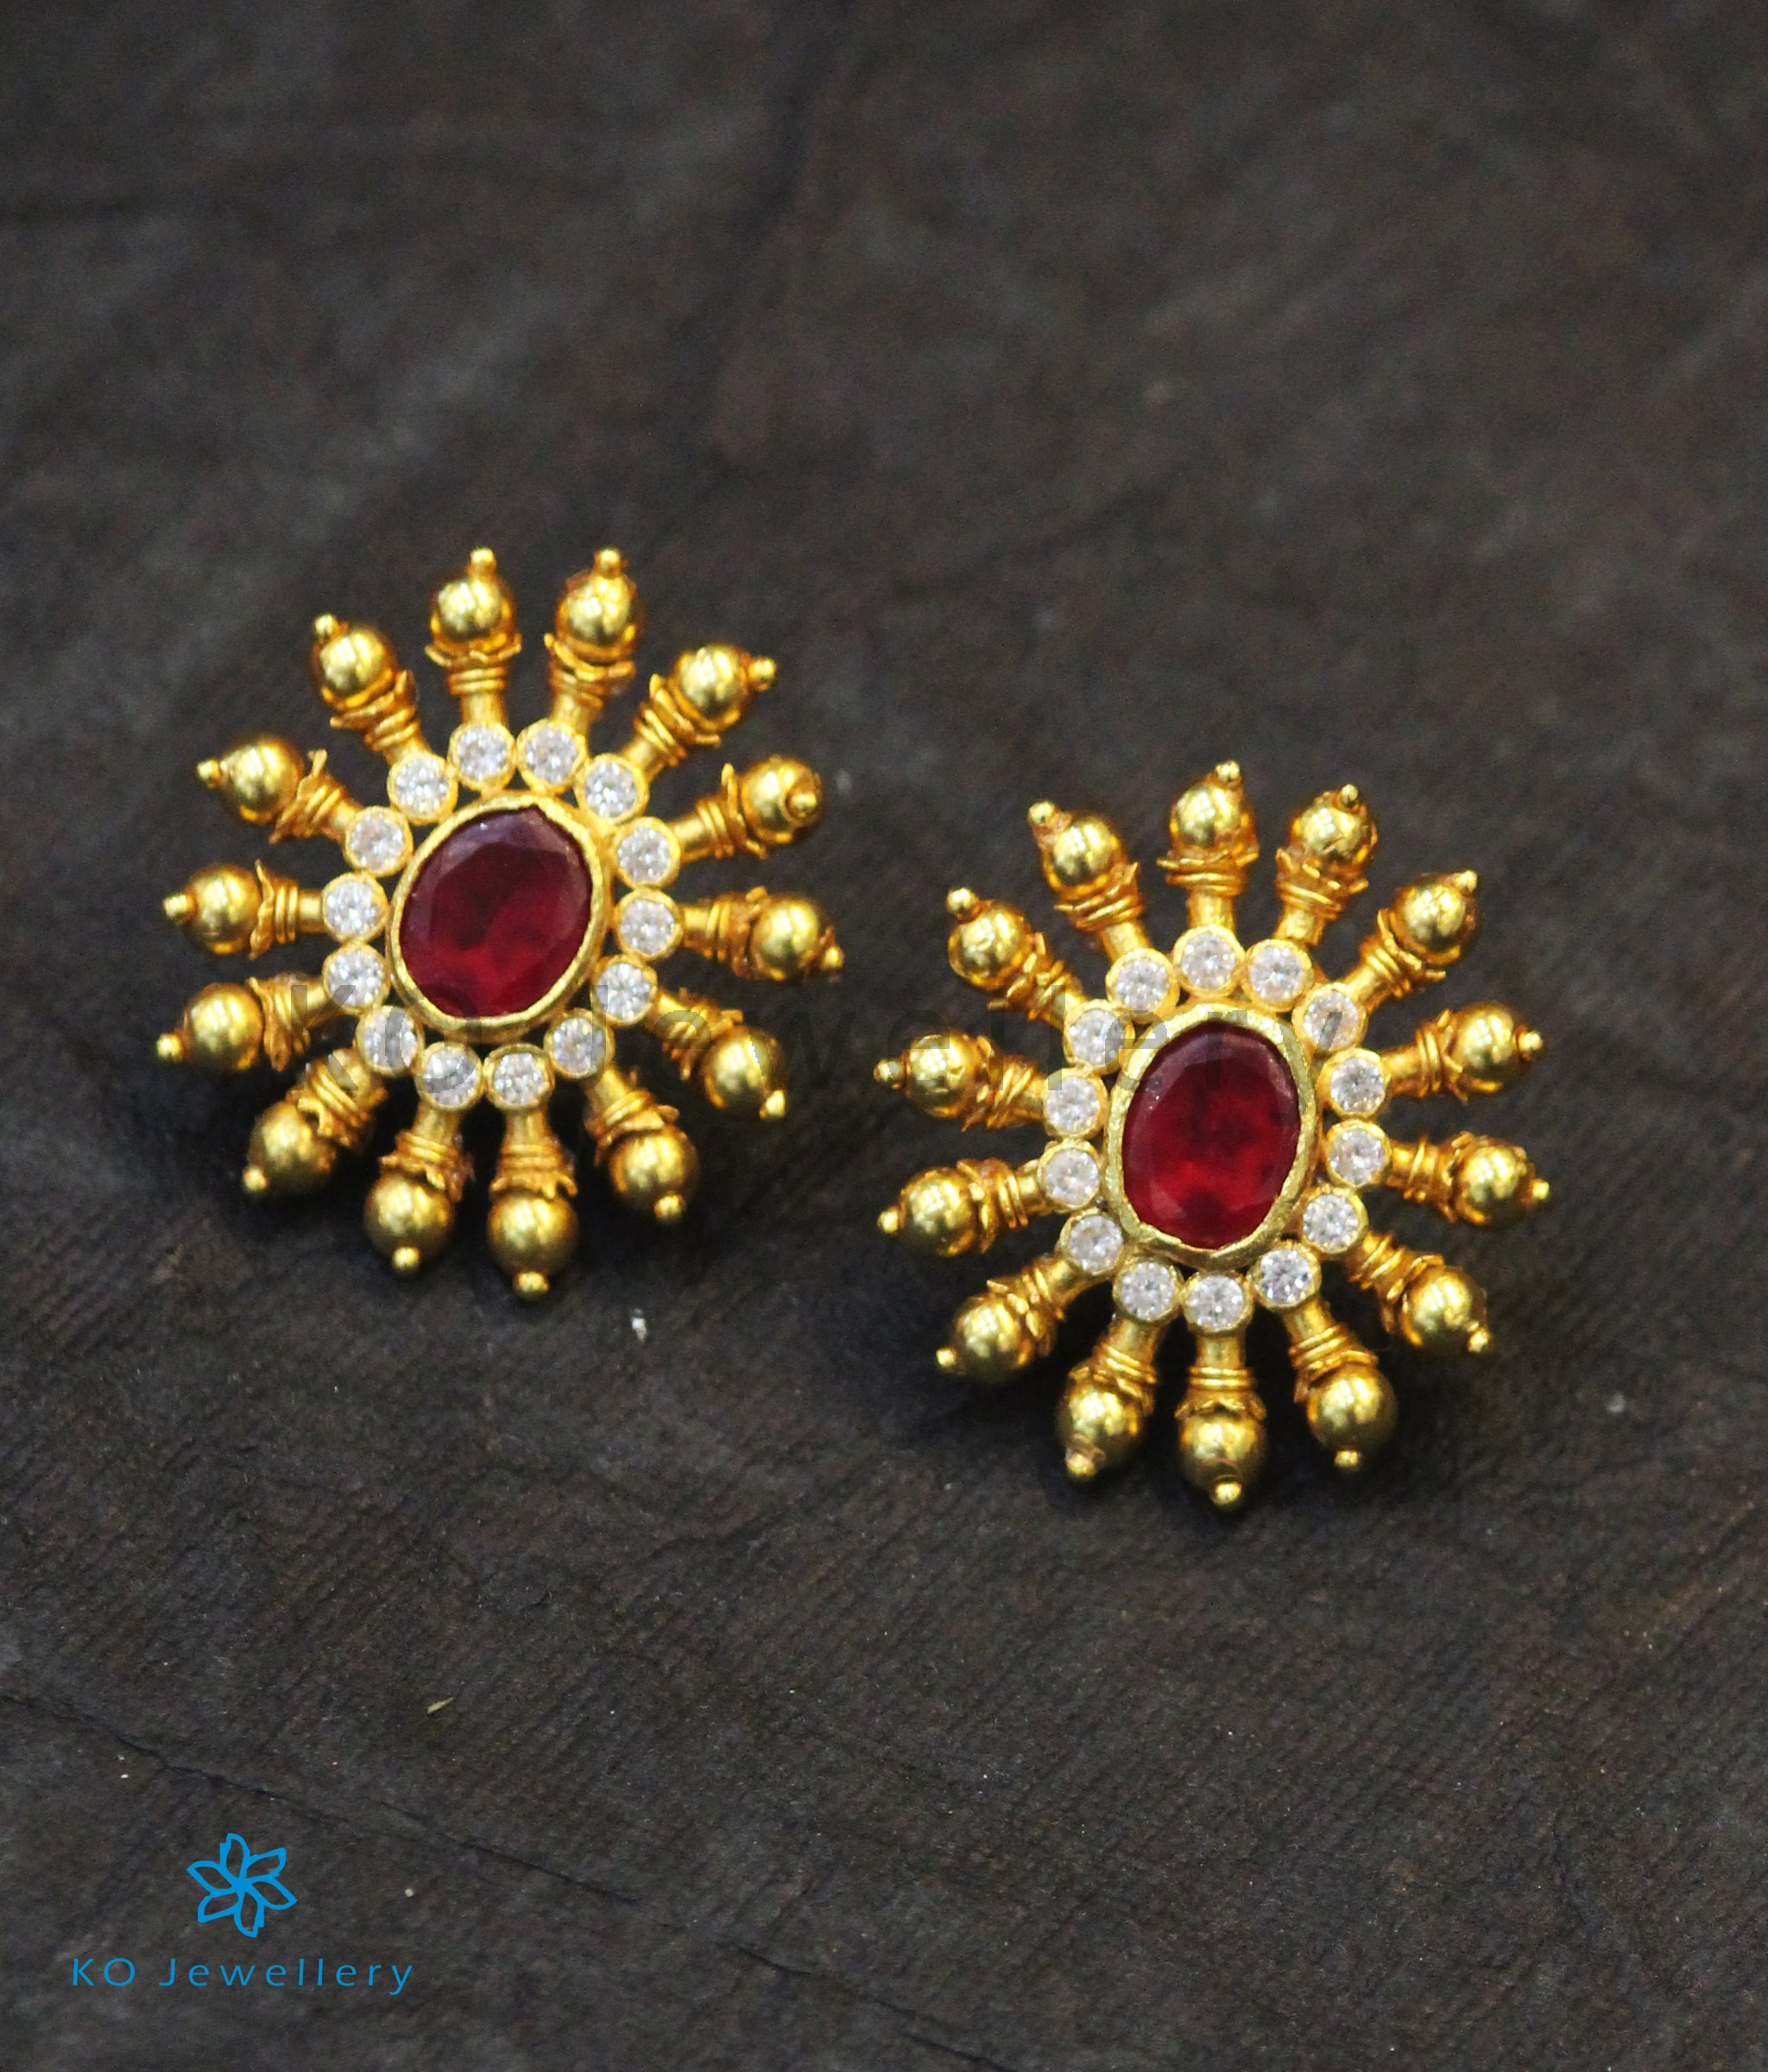 250407f3e Temple Jewellery - Buy authentic temple jewelry designs online Page ...